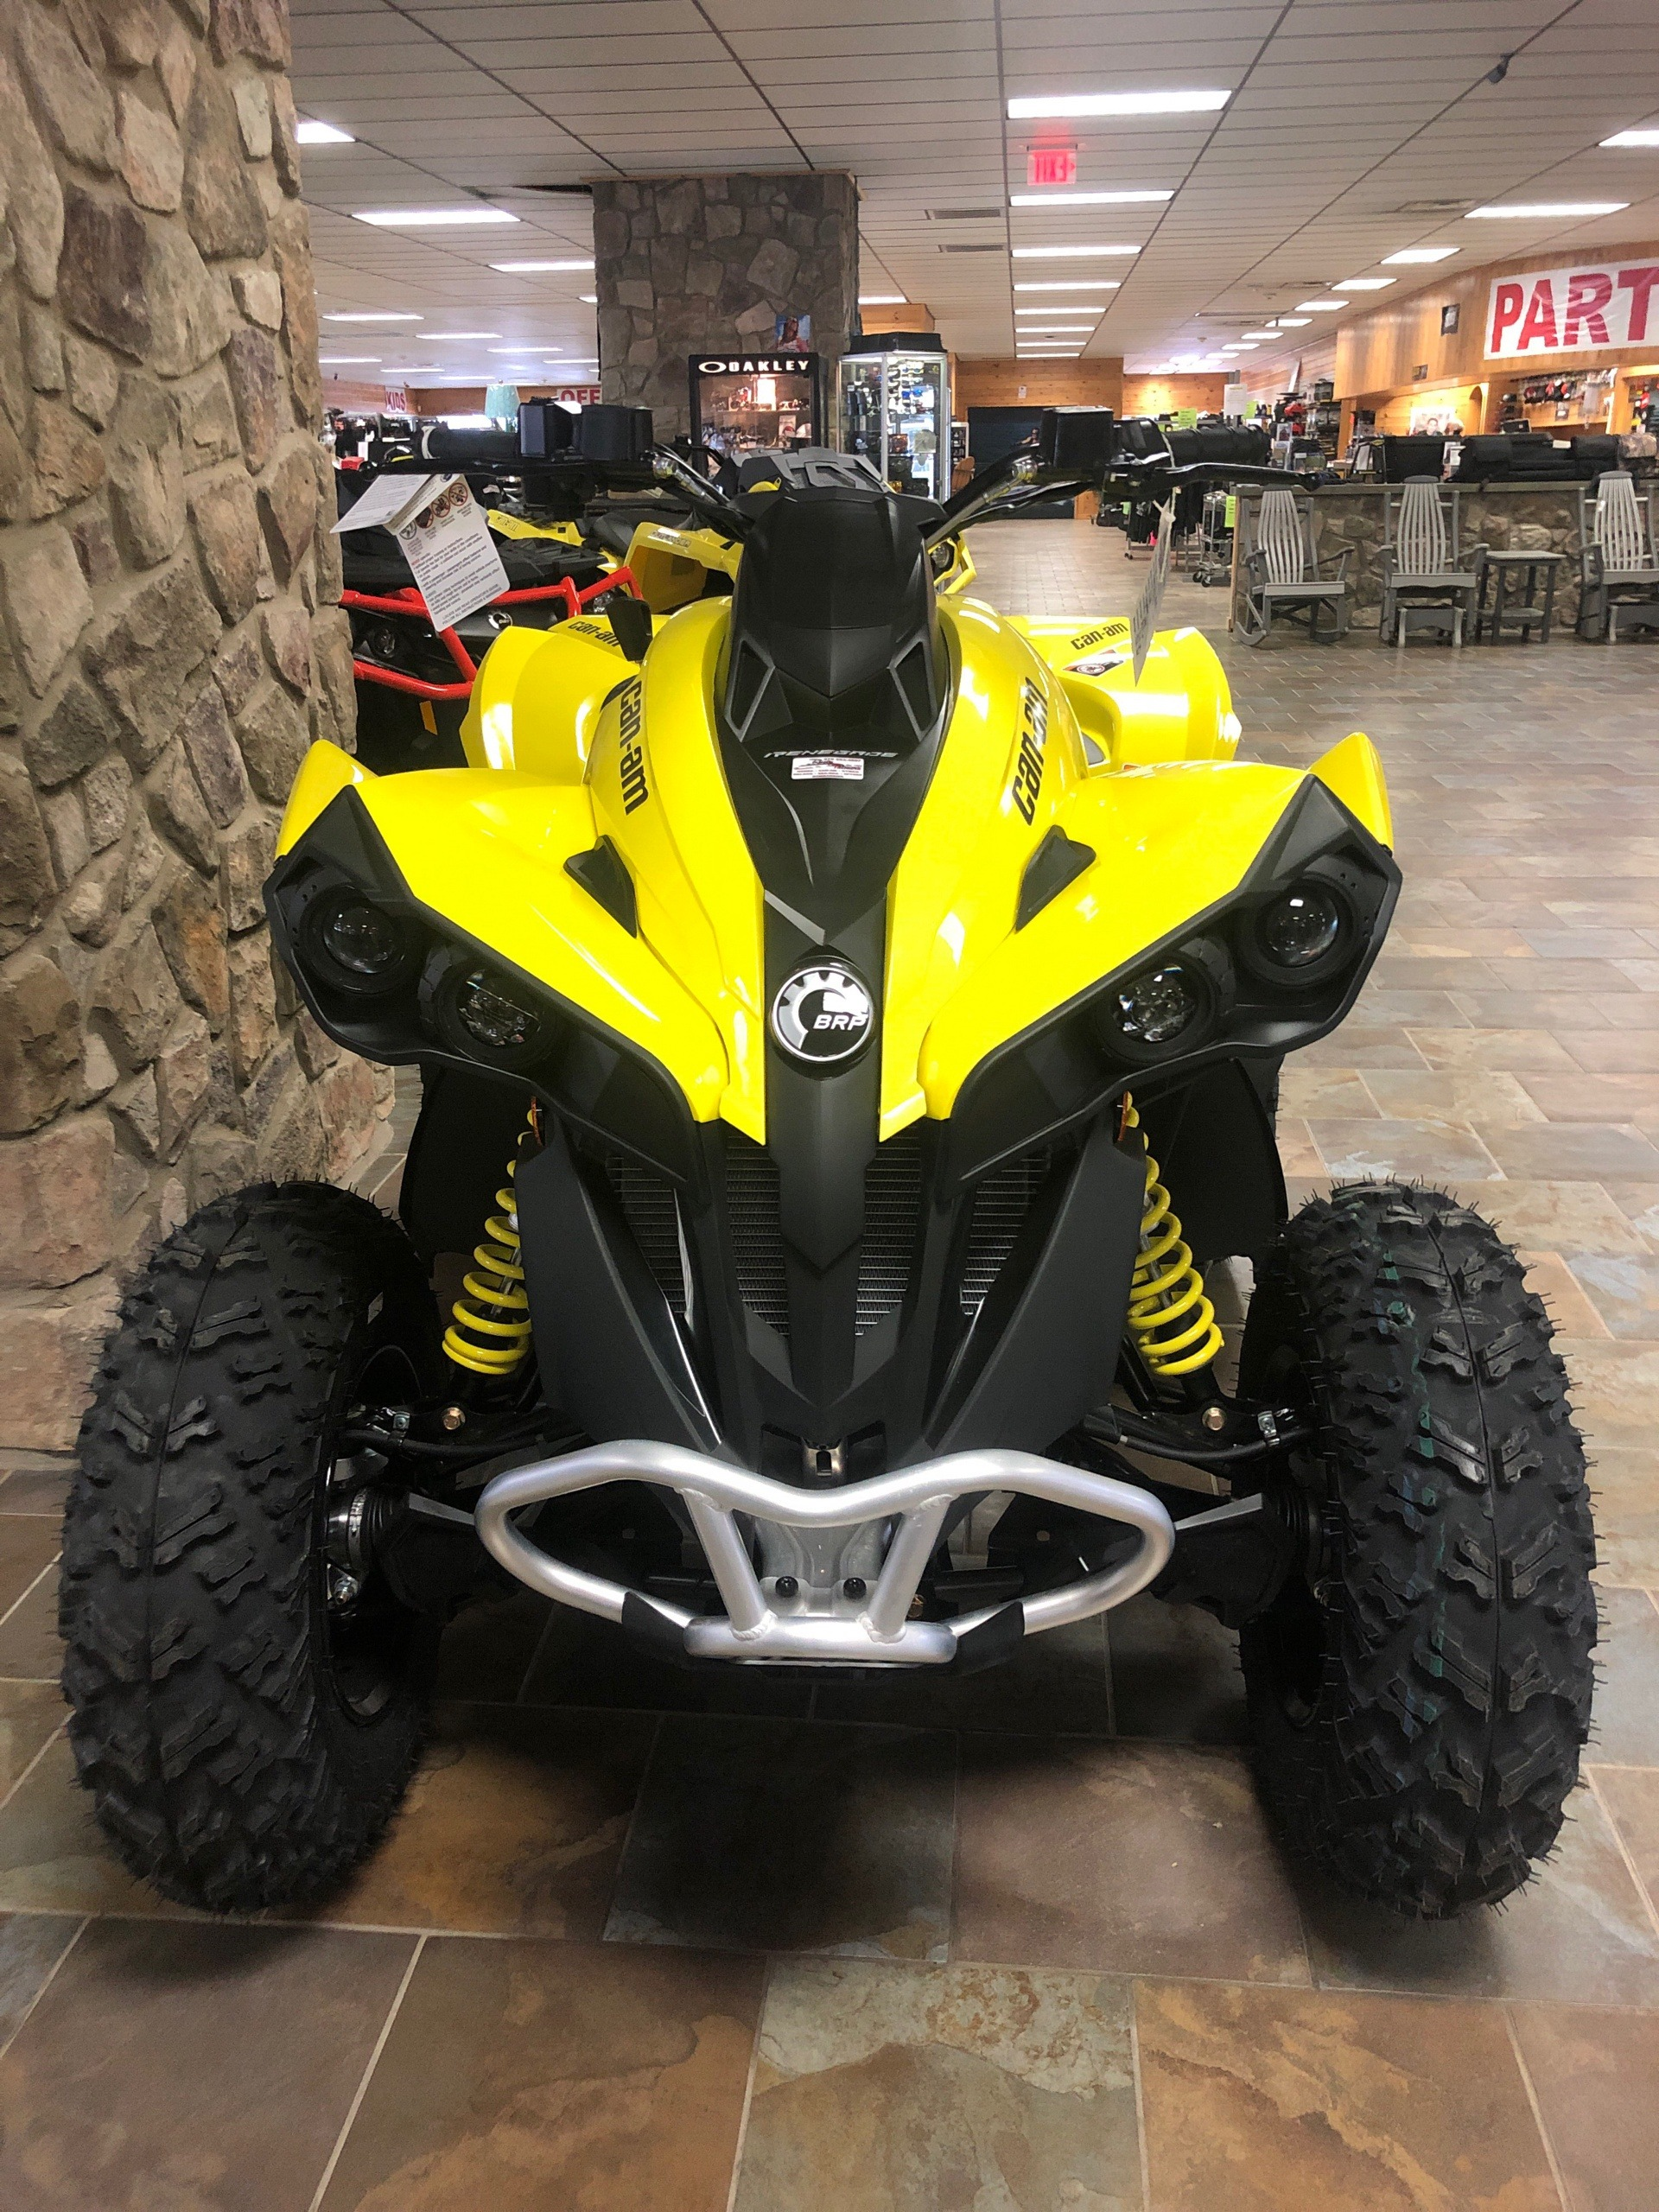 2019 Can-Am Renegade 1000R in Honesdale, Pennsylvania - Photo 2